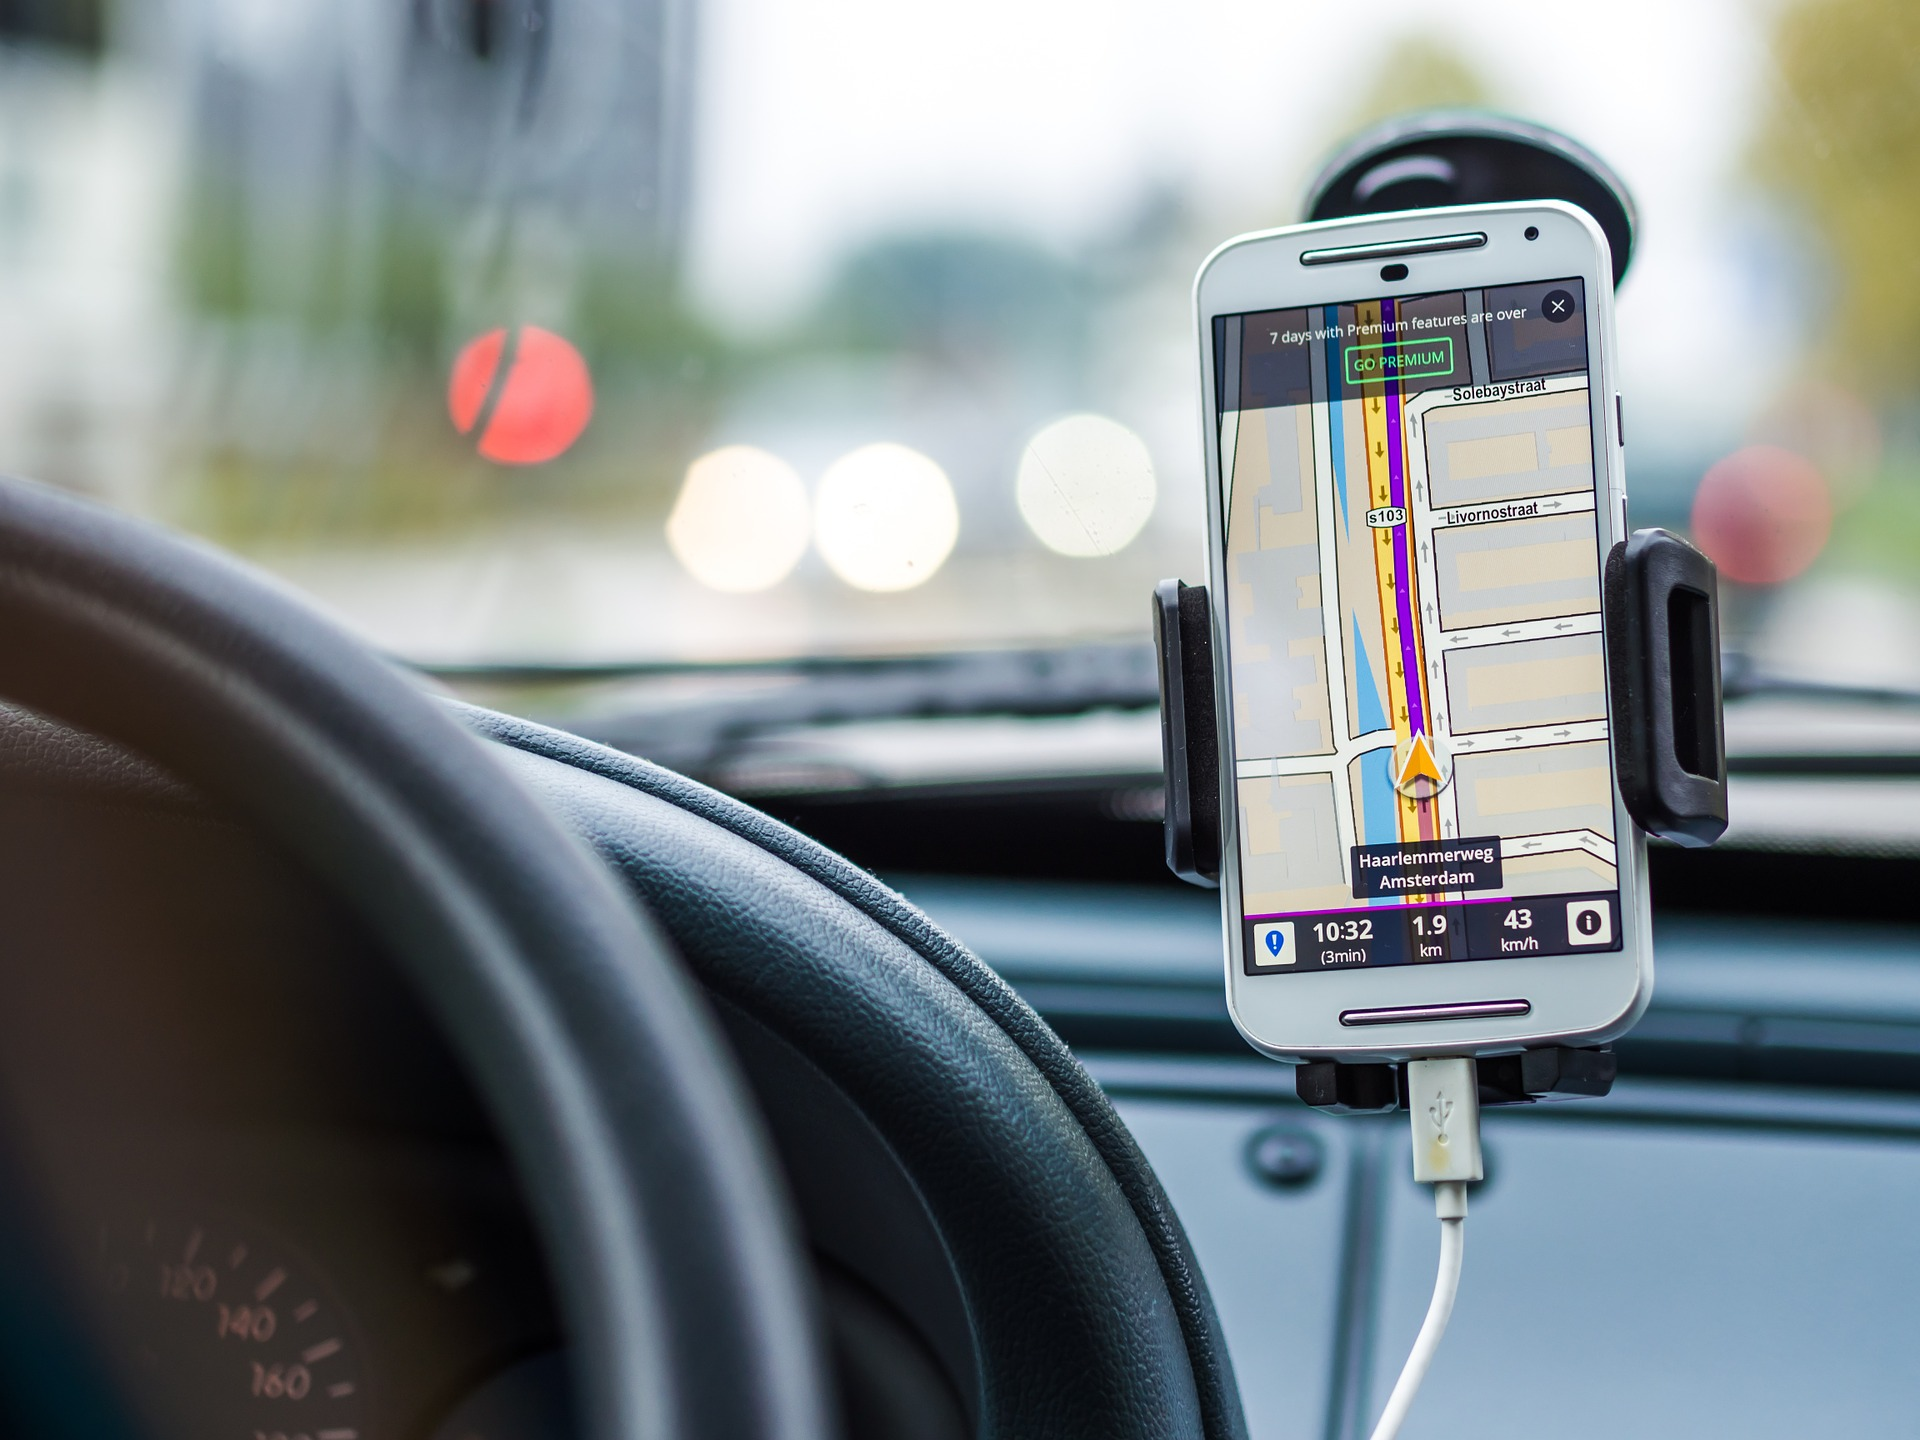 A smartphone enables better and easier navigation today